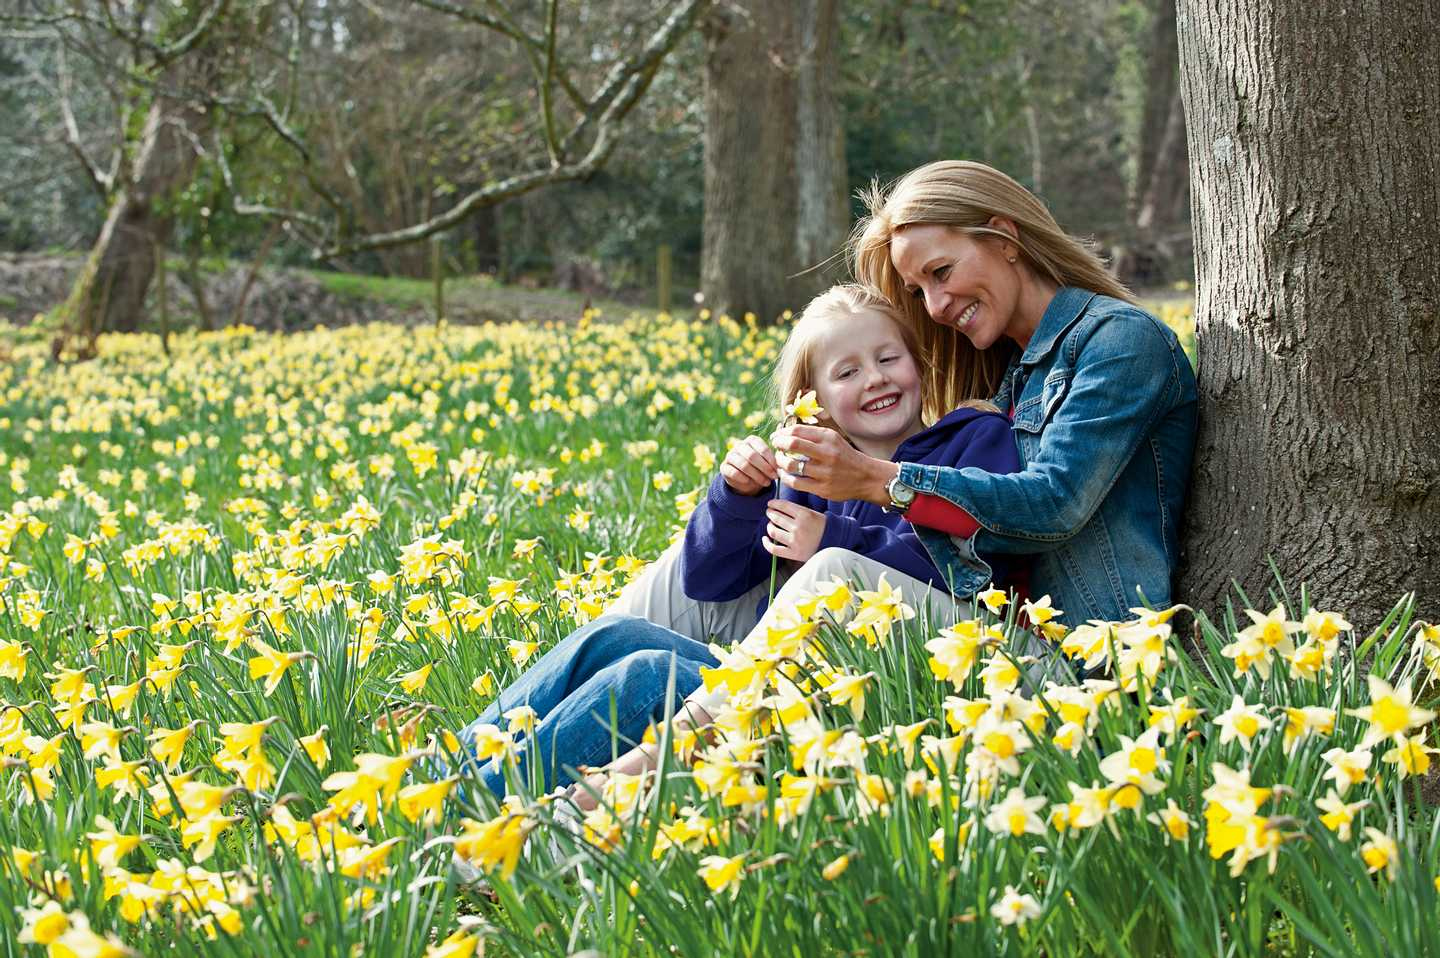 Mother and daughter relaxing in a field at spring time